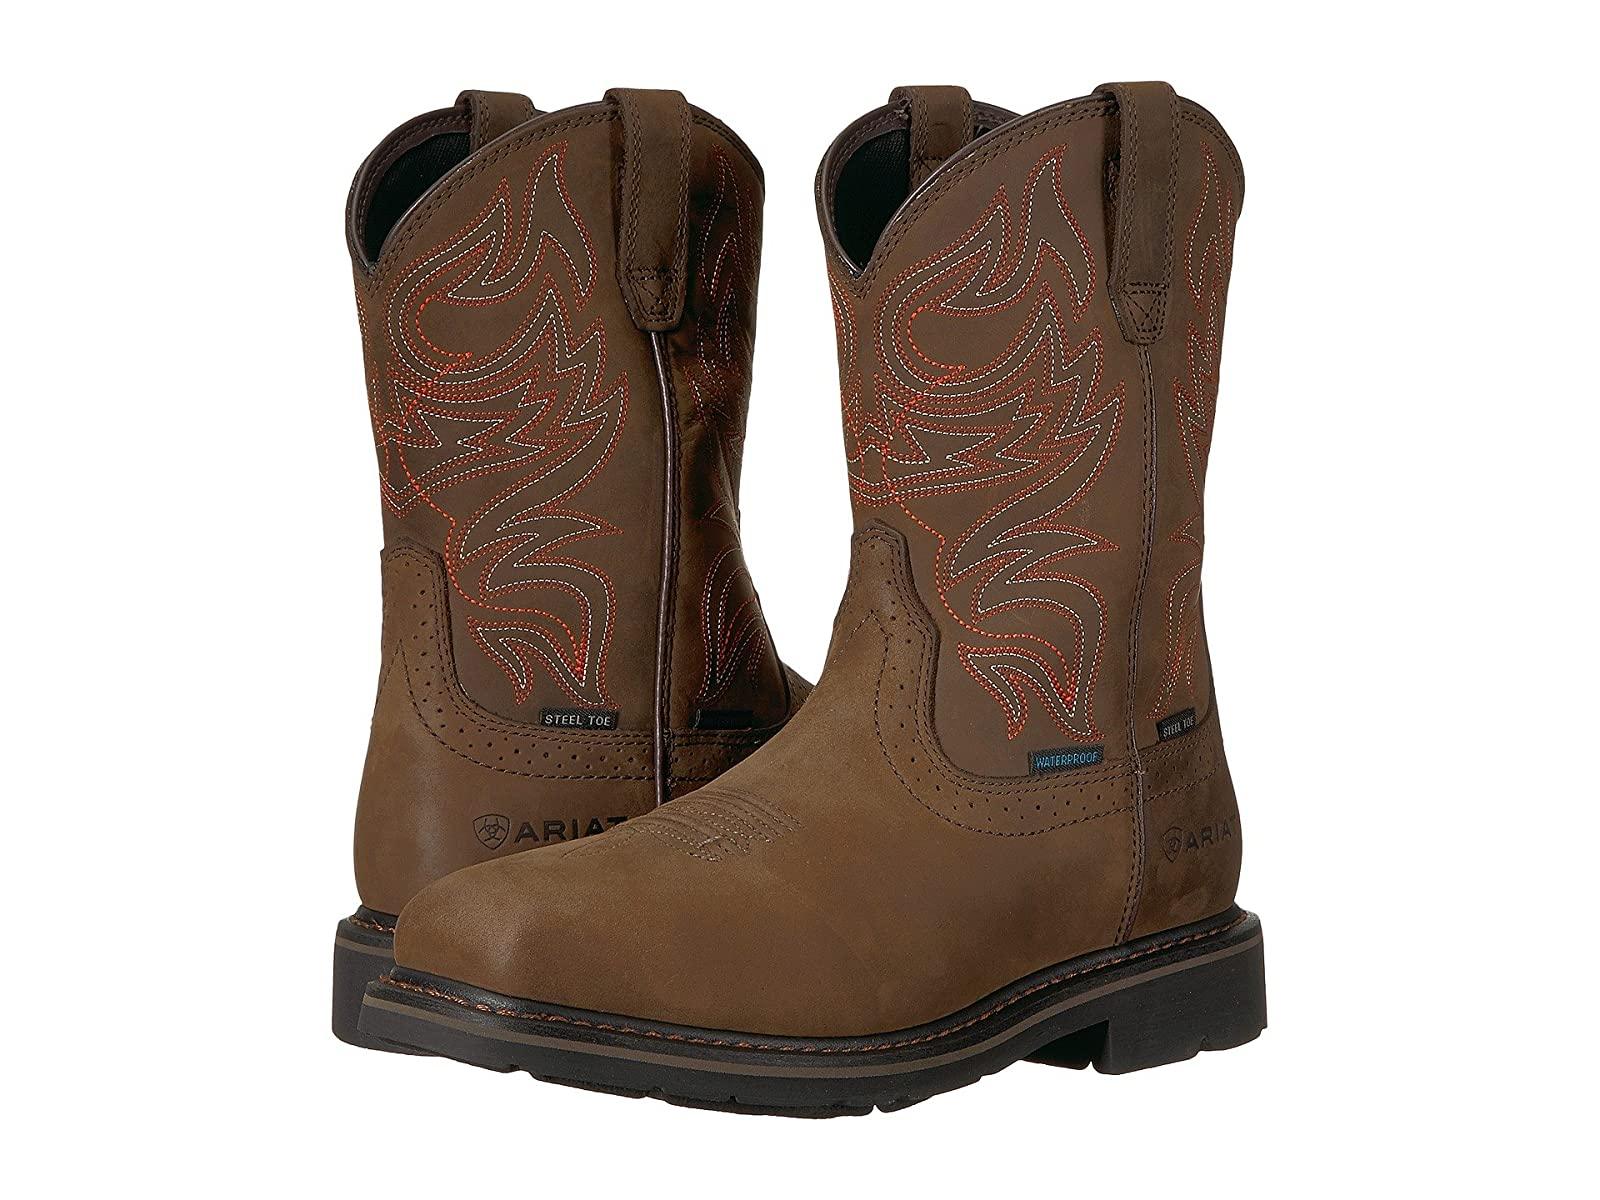 Ariat Sierra Delta H2O Steel ToeSelling fashionable and eye-catching shoes